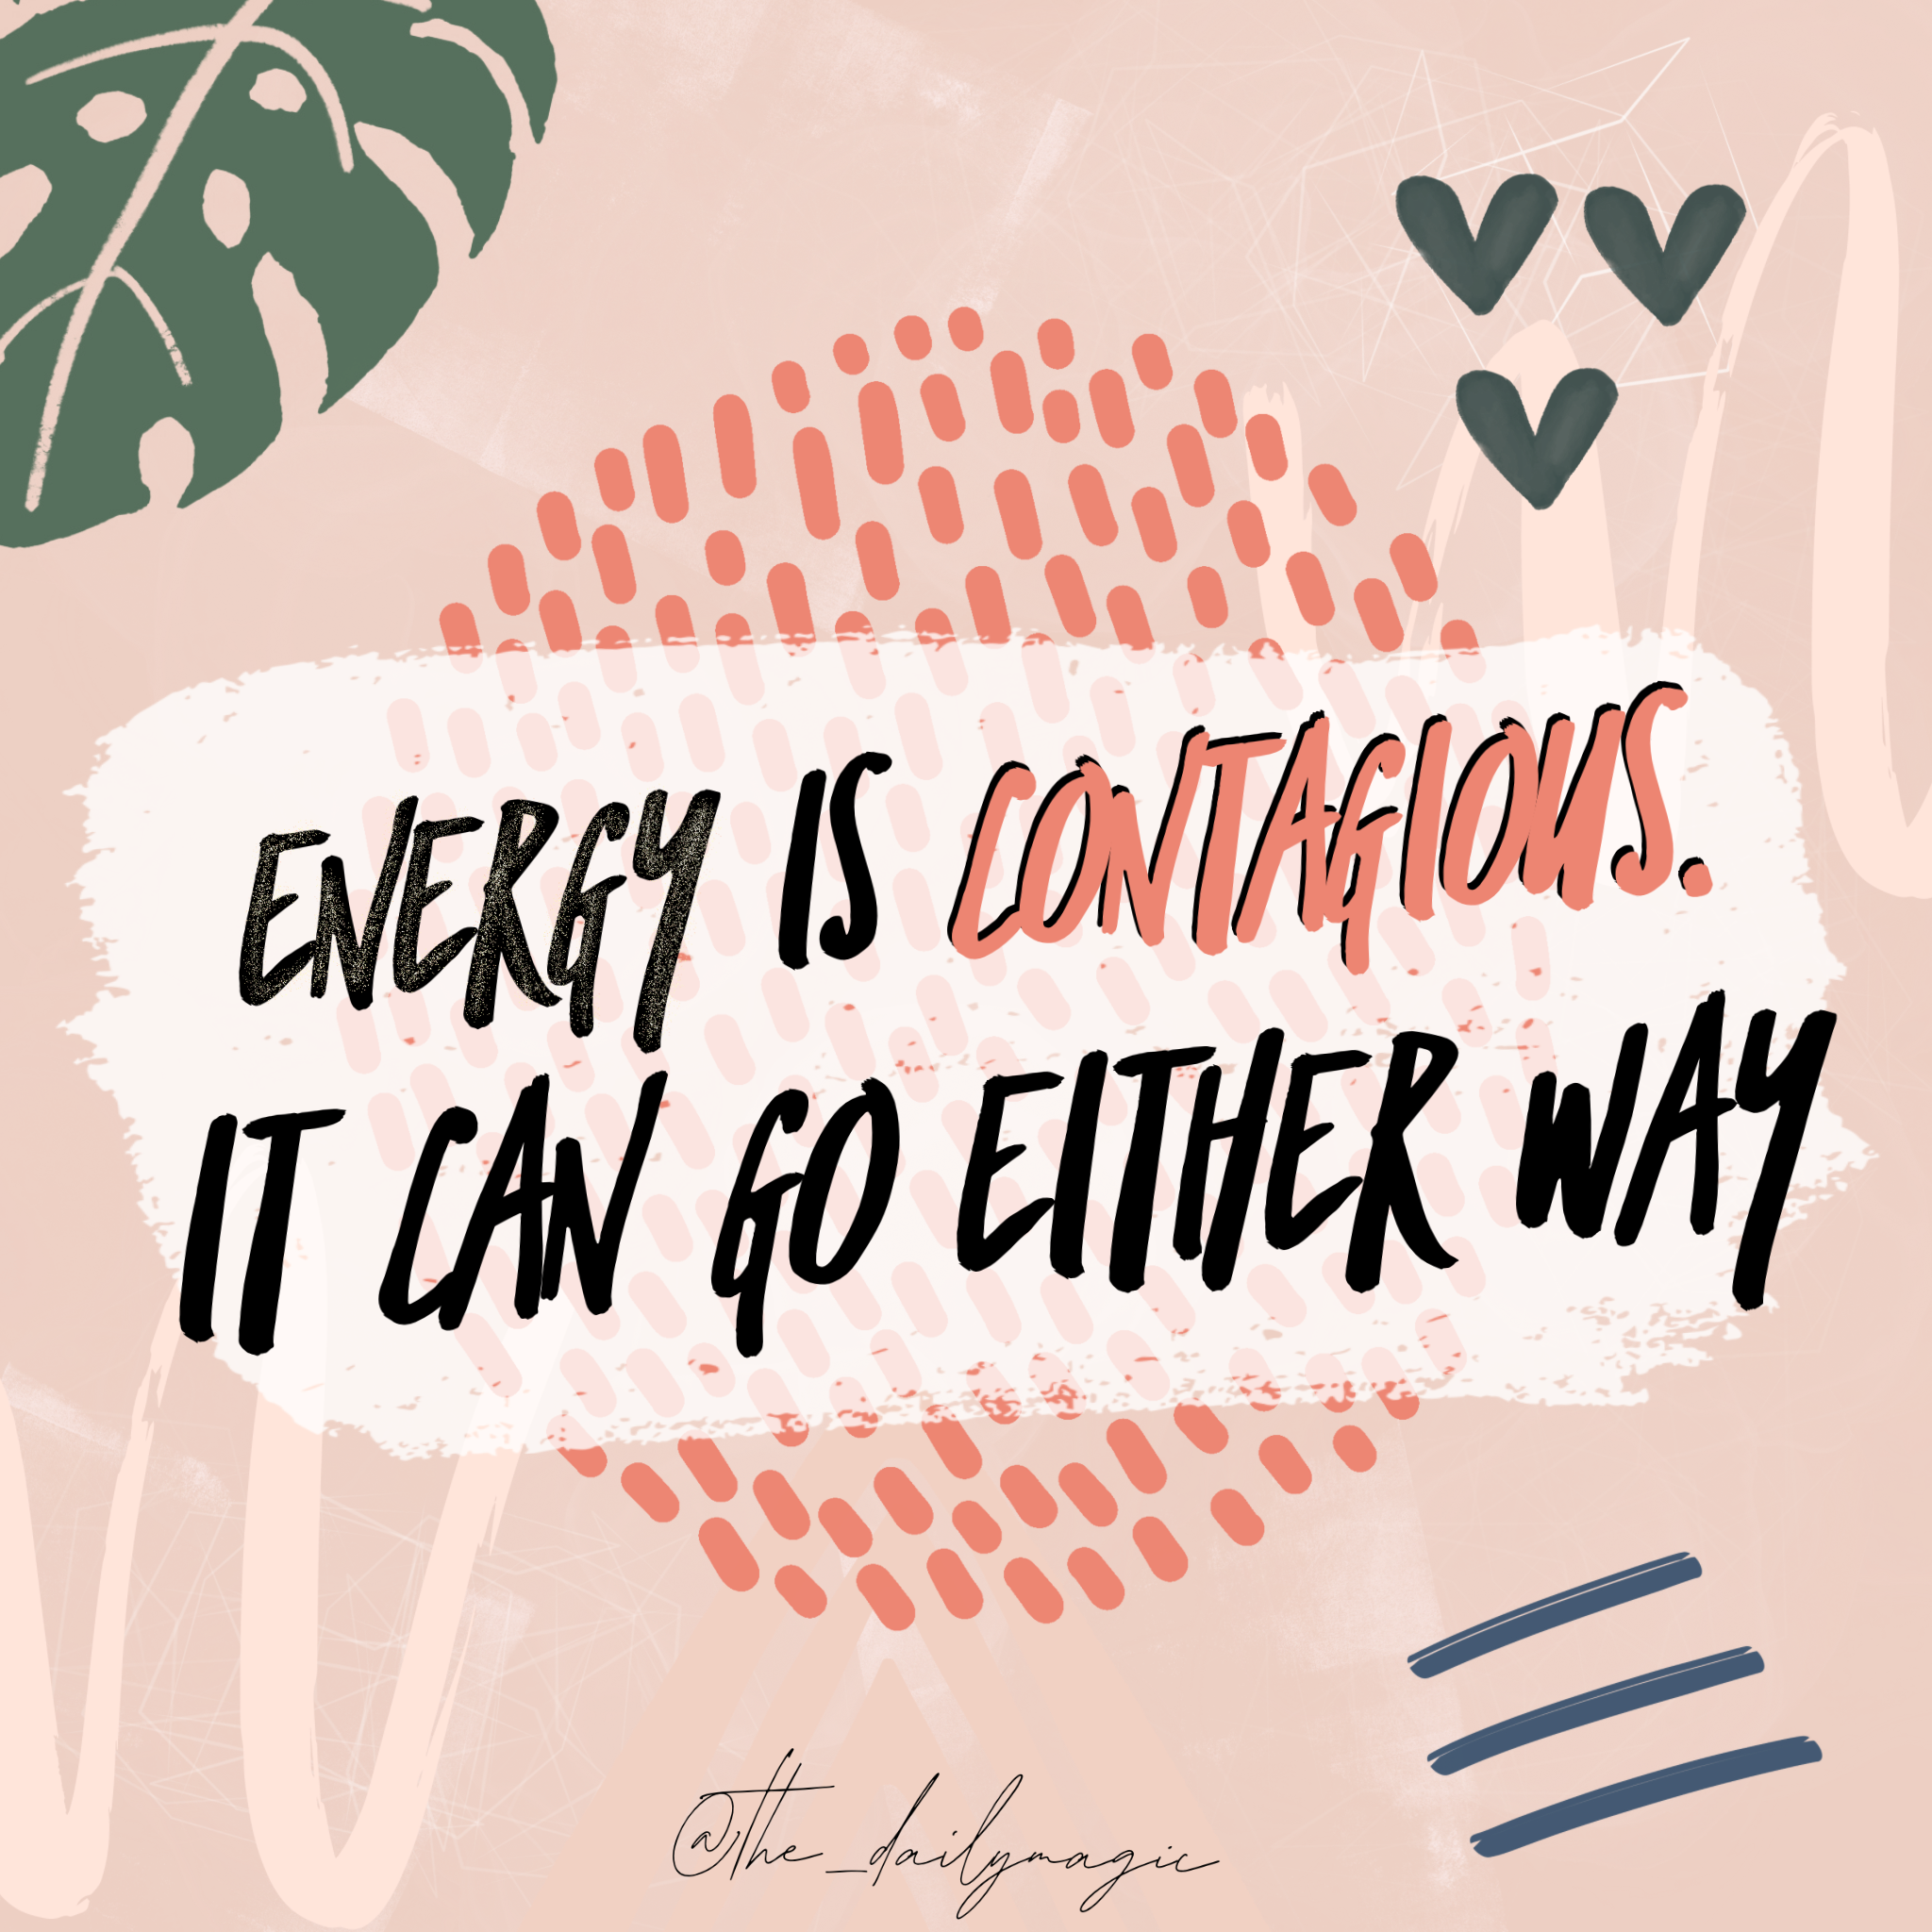 Energy is contagious. It can go either way